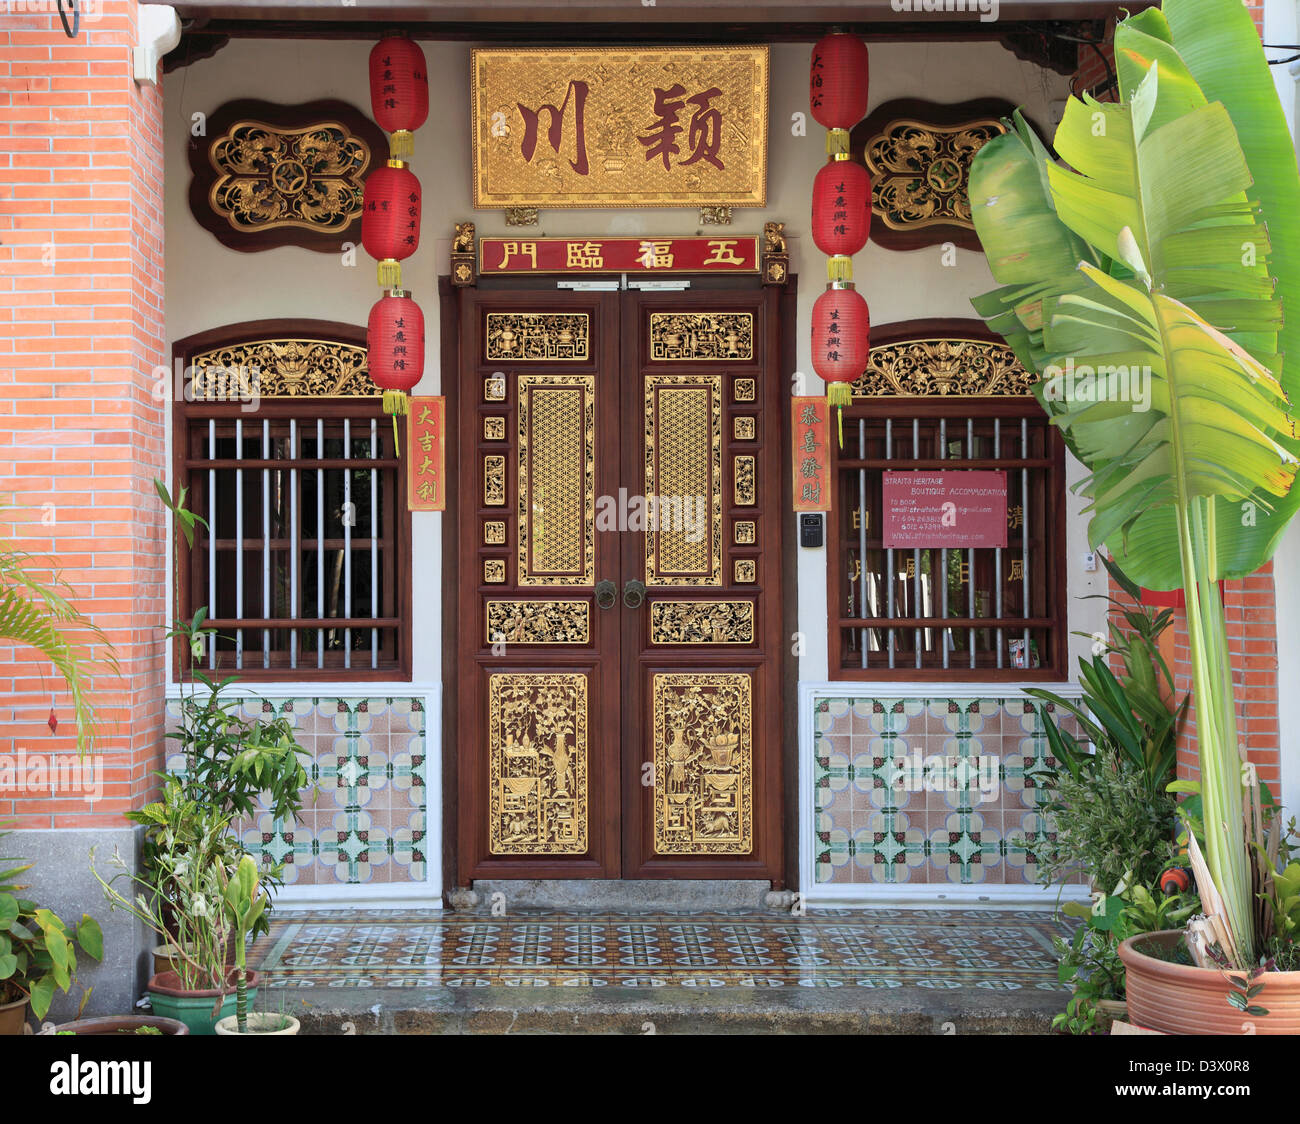 Malaysia Penang Georgetown Heritage Architecture